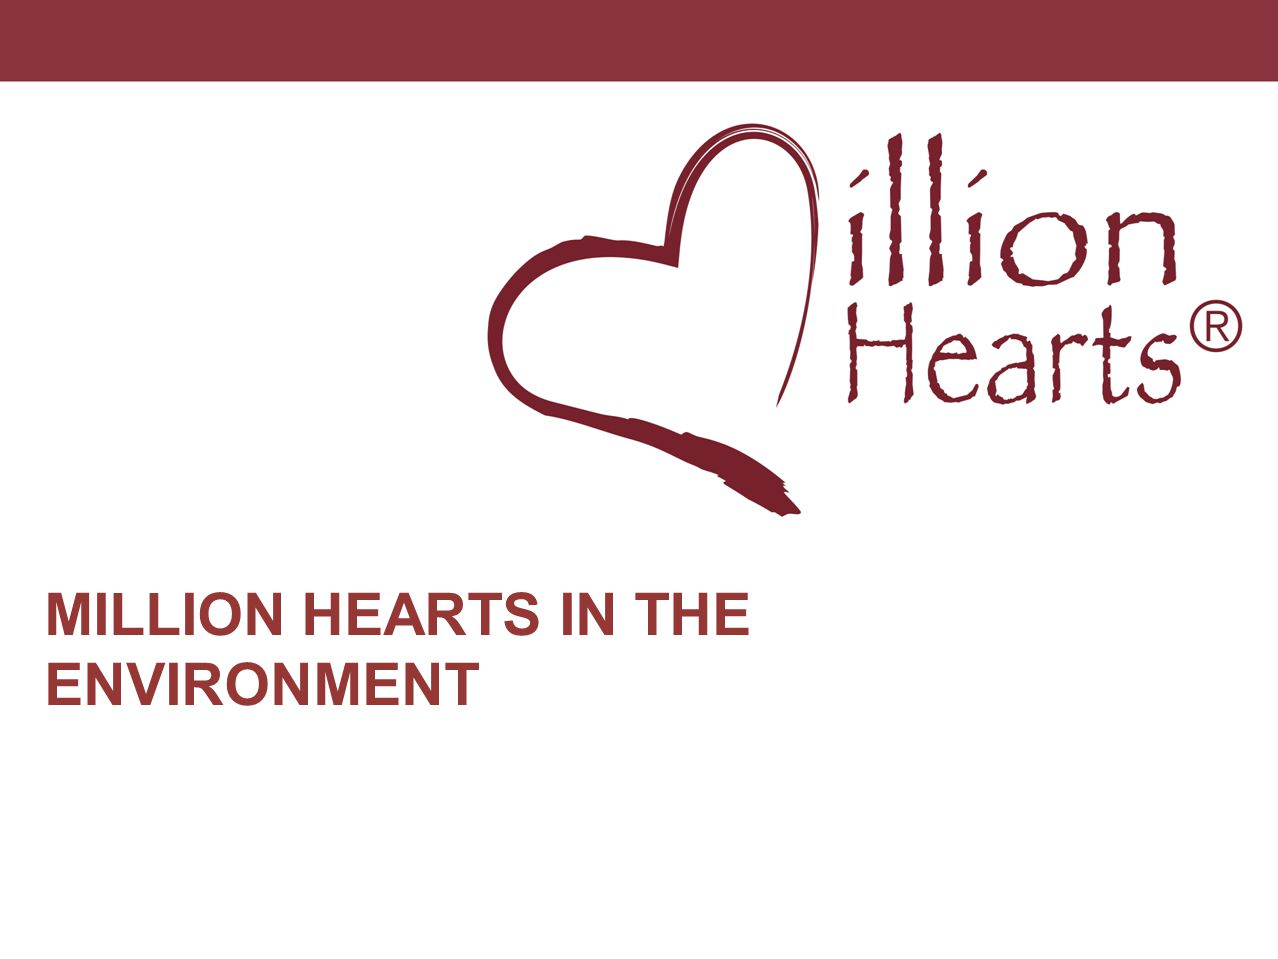 MILLION HEARTS IN THE ENVIRONMENT